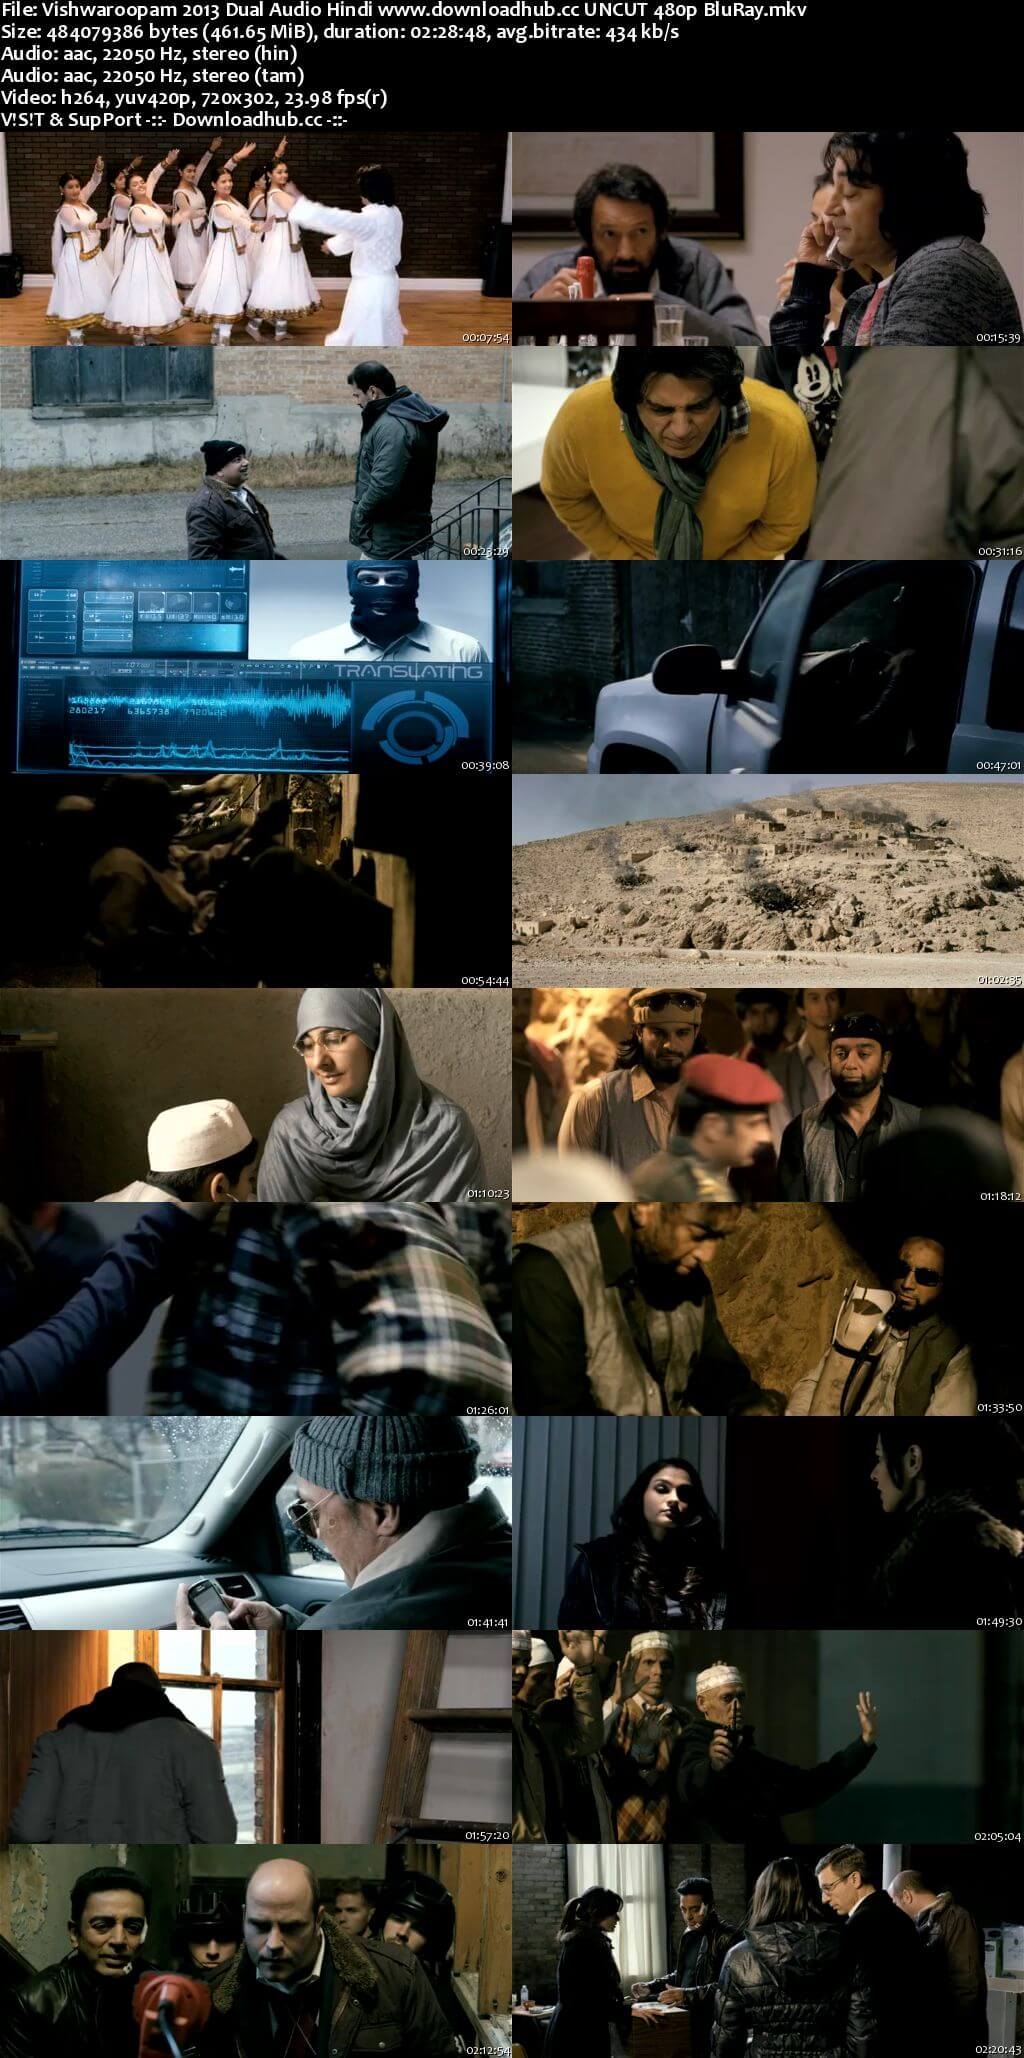 Vishwaroopam 2013 Hindi Dual Audio 450MB UNCUT BluRay 480p